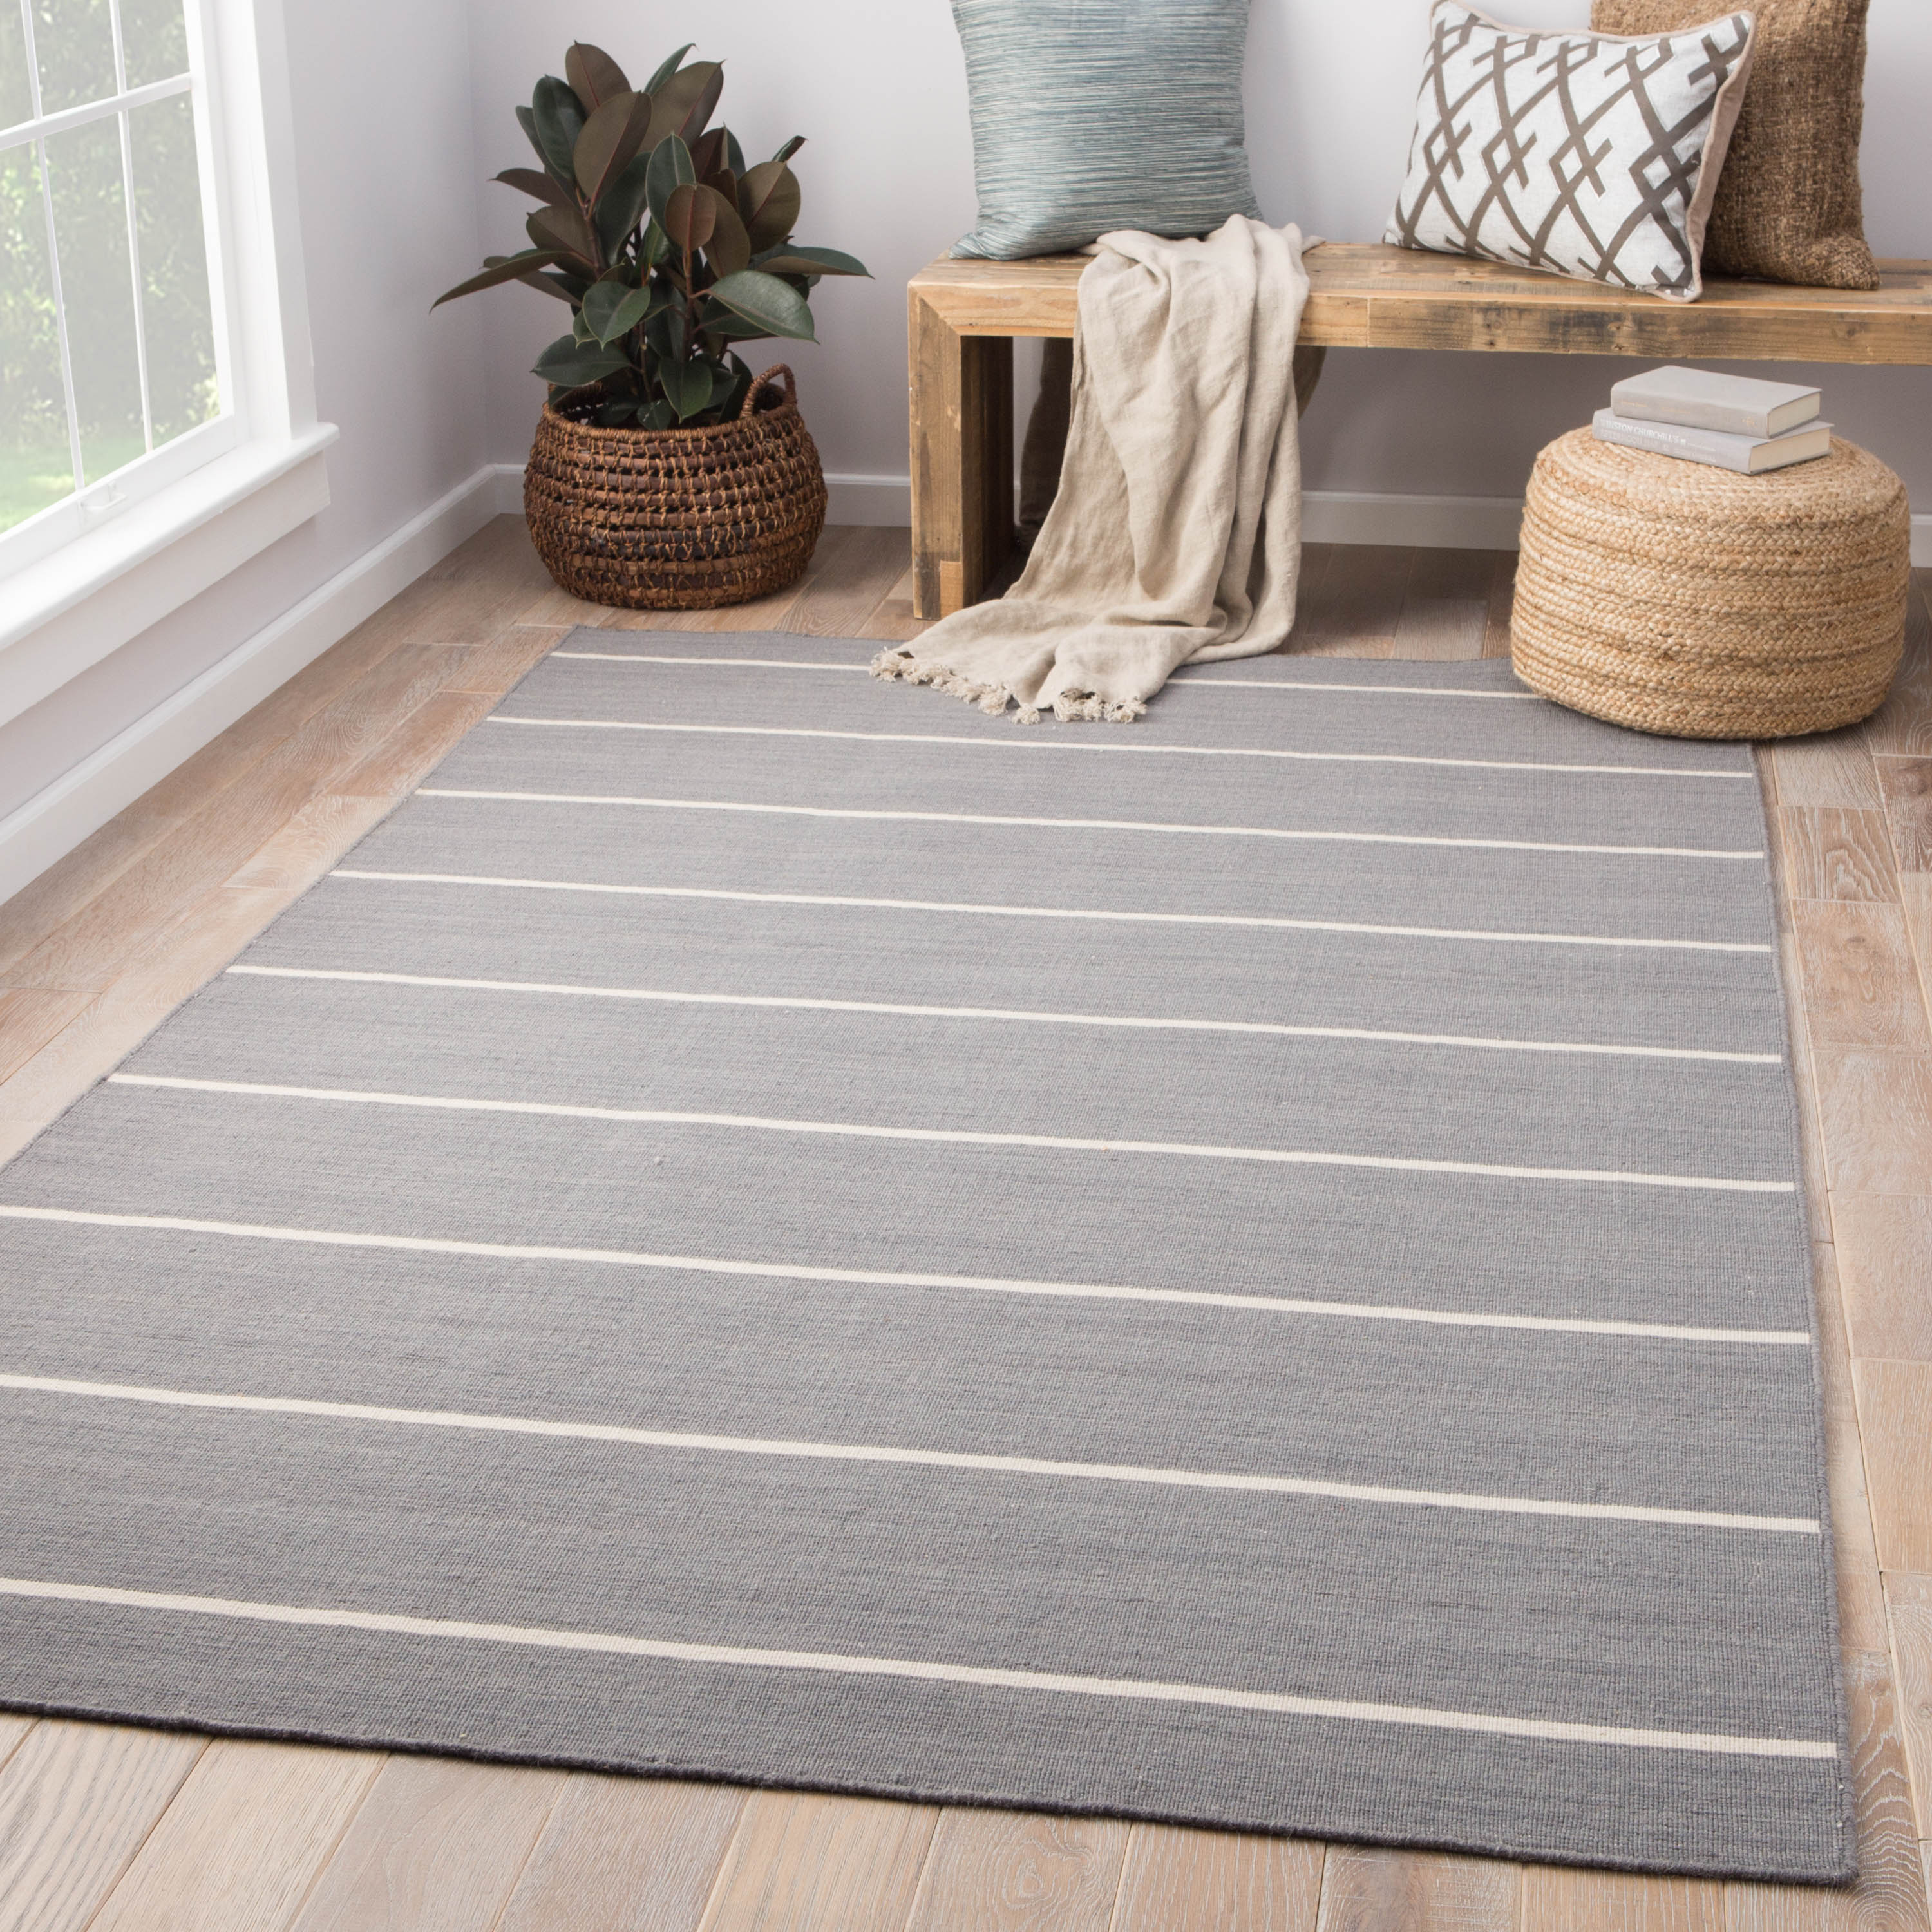 Rectangle 12x15 Gray Stripe Hand Woven Wool Casual recommended for Kitchen, Bedroom, Bathroom, Dining Room, Office, Hallway, Living Room